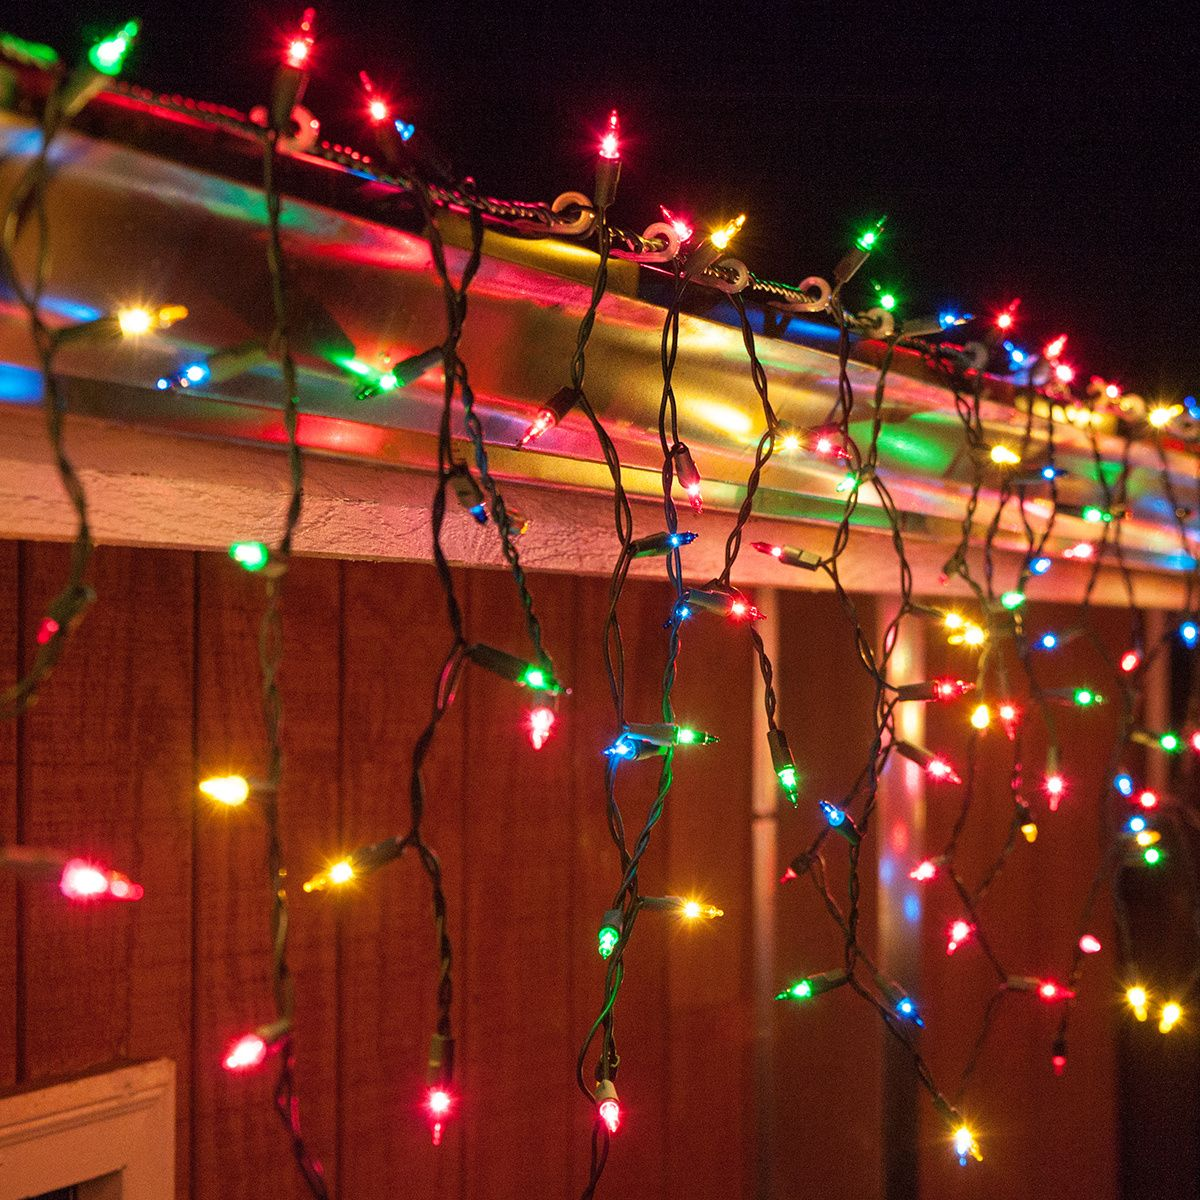 For 11 99 Multicolor Icicle Lights On A L Green Wire With 3 Inch Spacing Between Drop Icicle Lights Colored Christmas Lights Multi Colored Christmas Lights